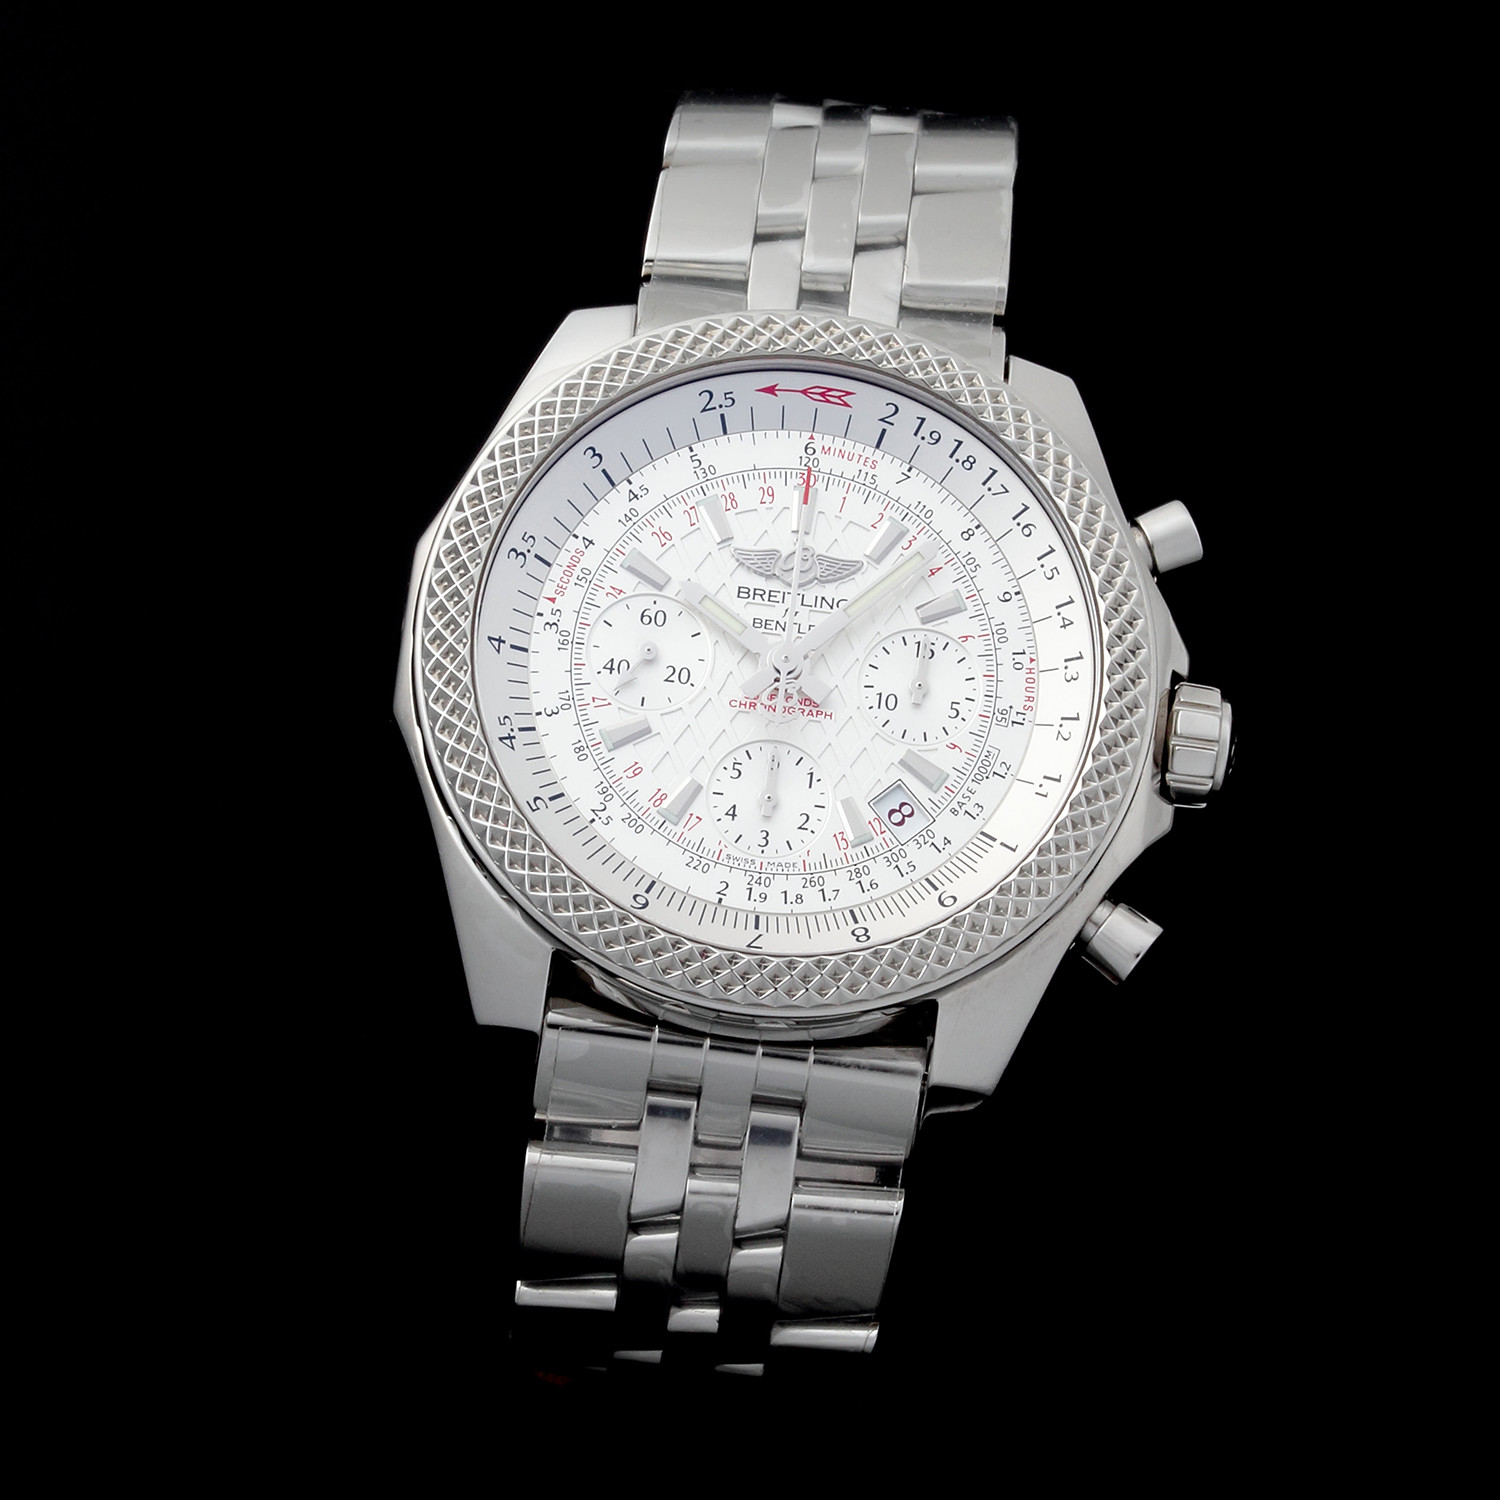 Breitling Bentley Chronograph Automatic // AB0612 // TM044